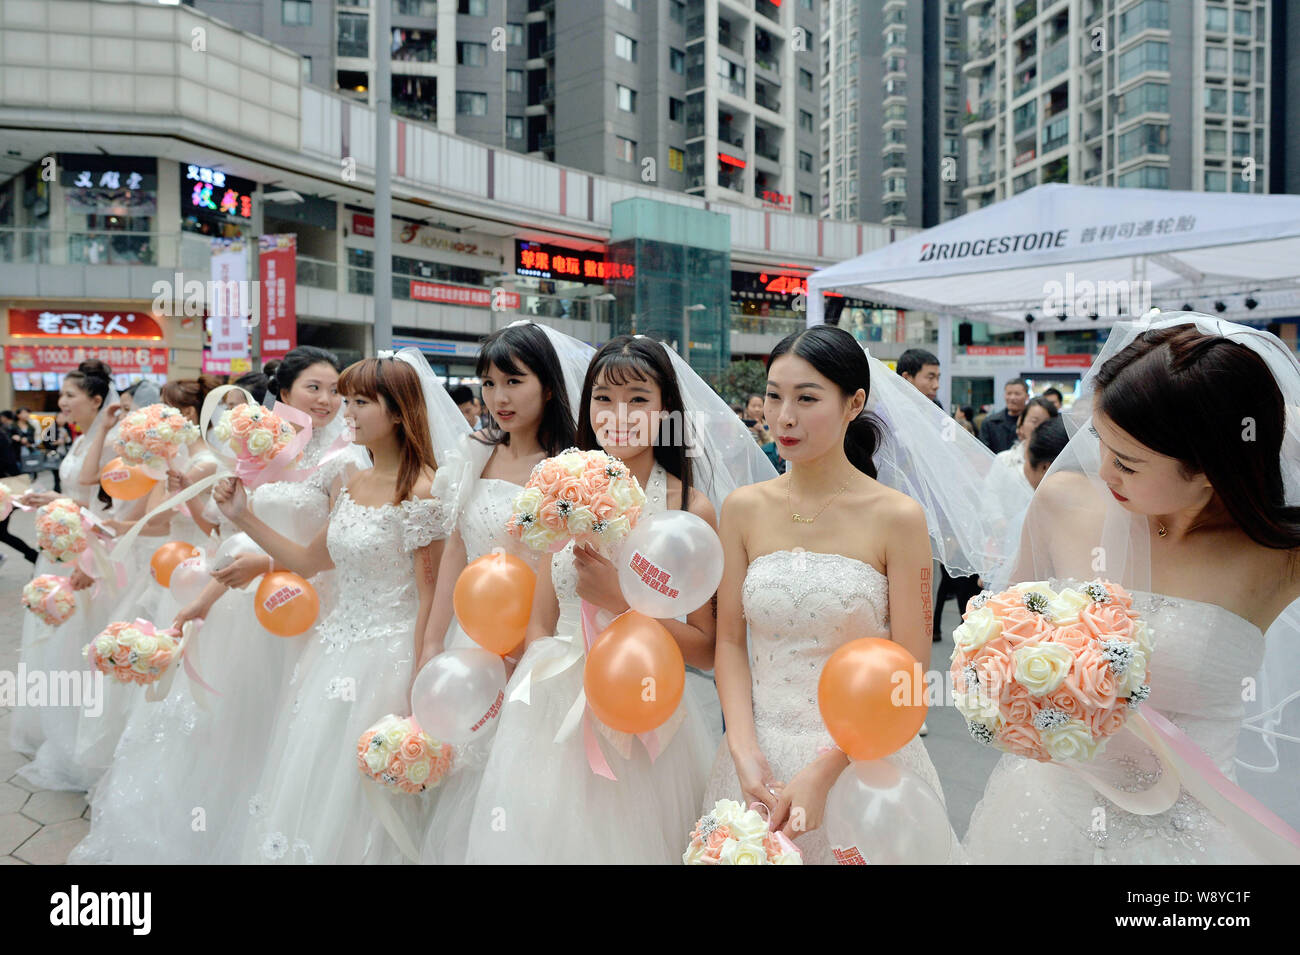 Single Women Dressed In Wedding Gowns Hold Bouquets Of Flowers And